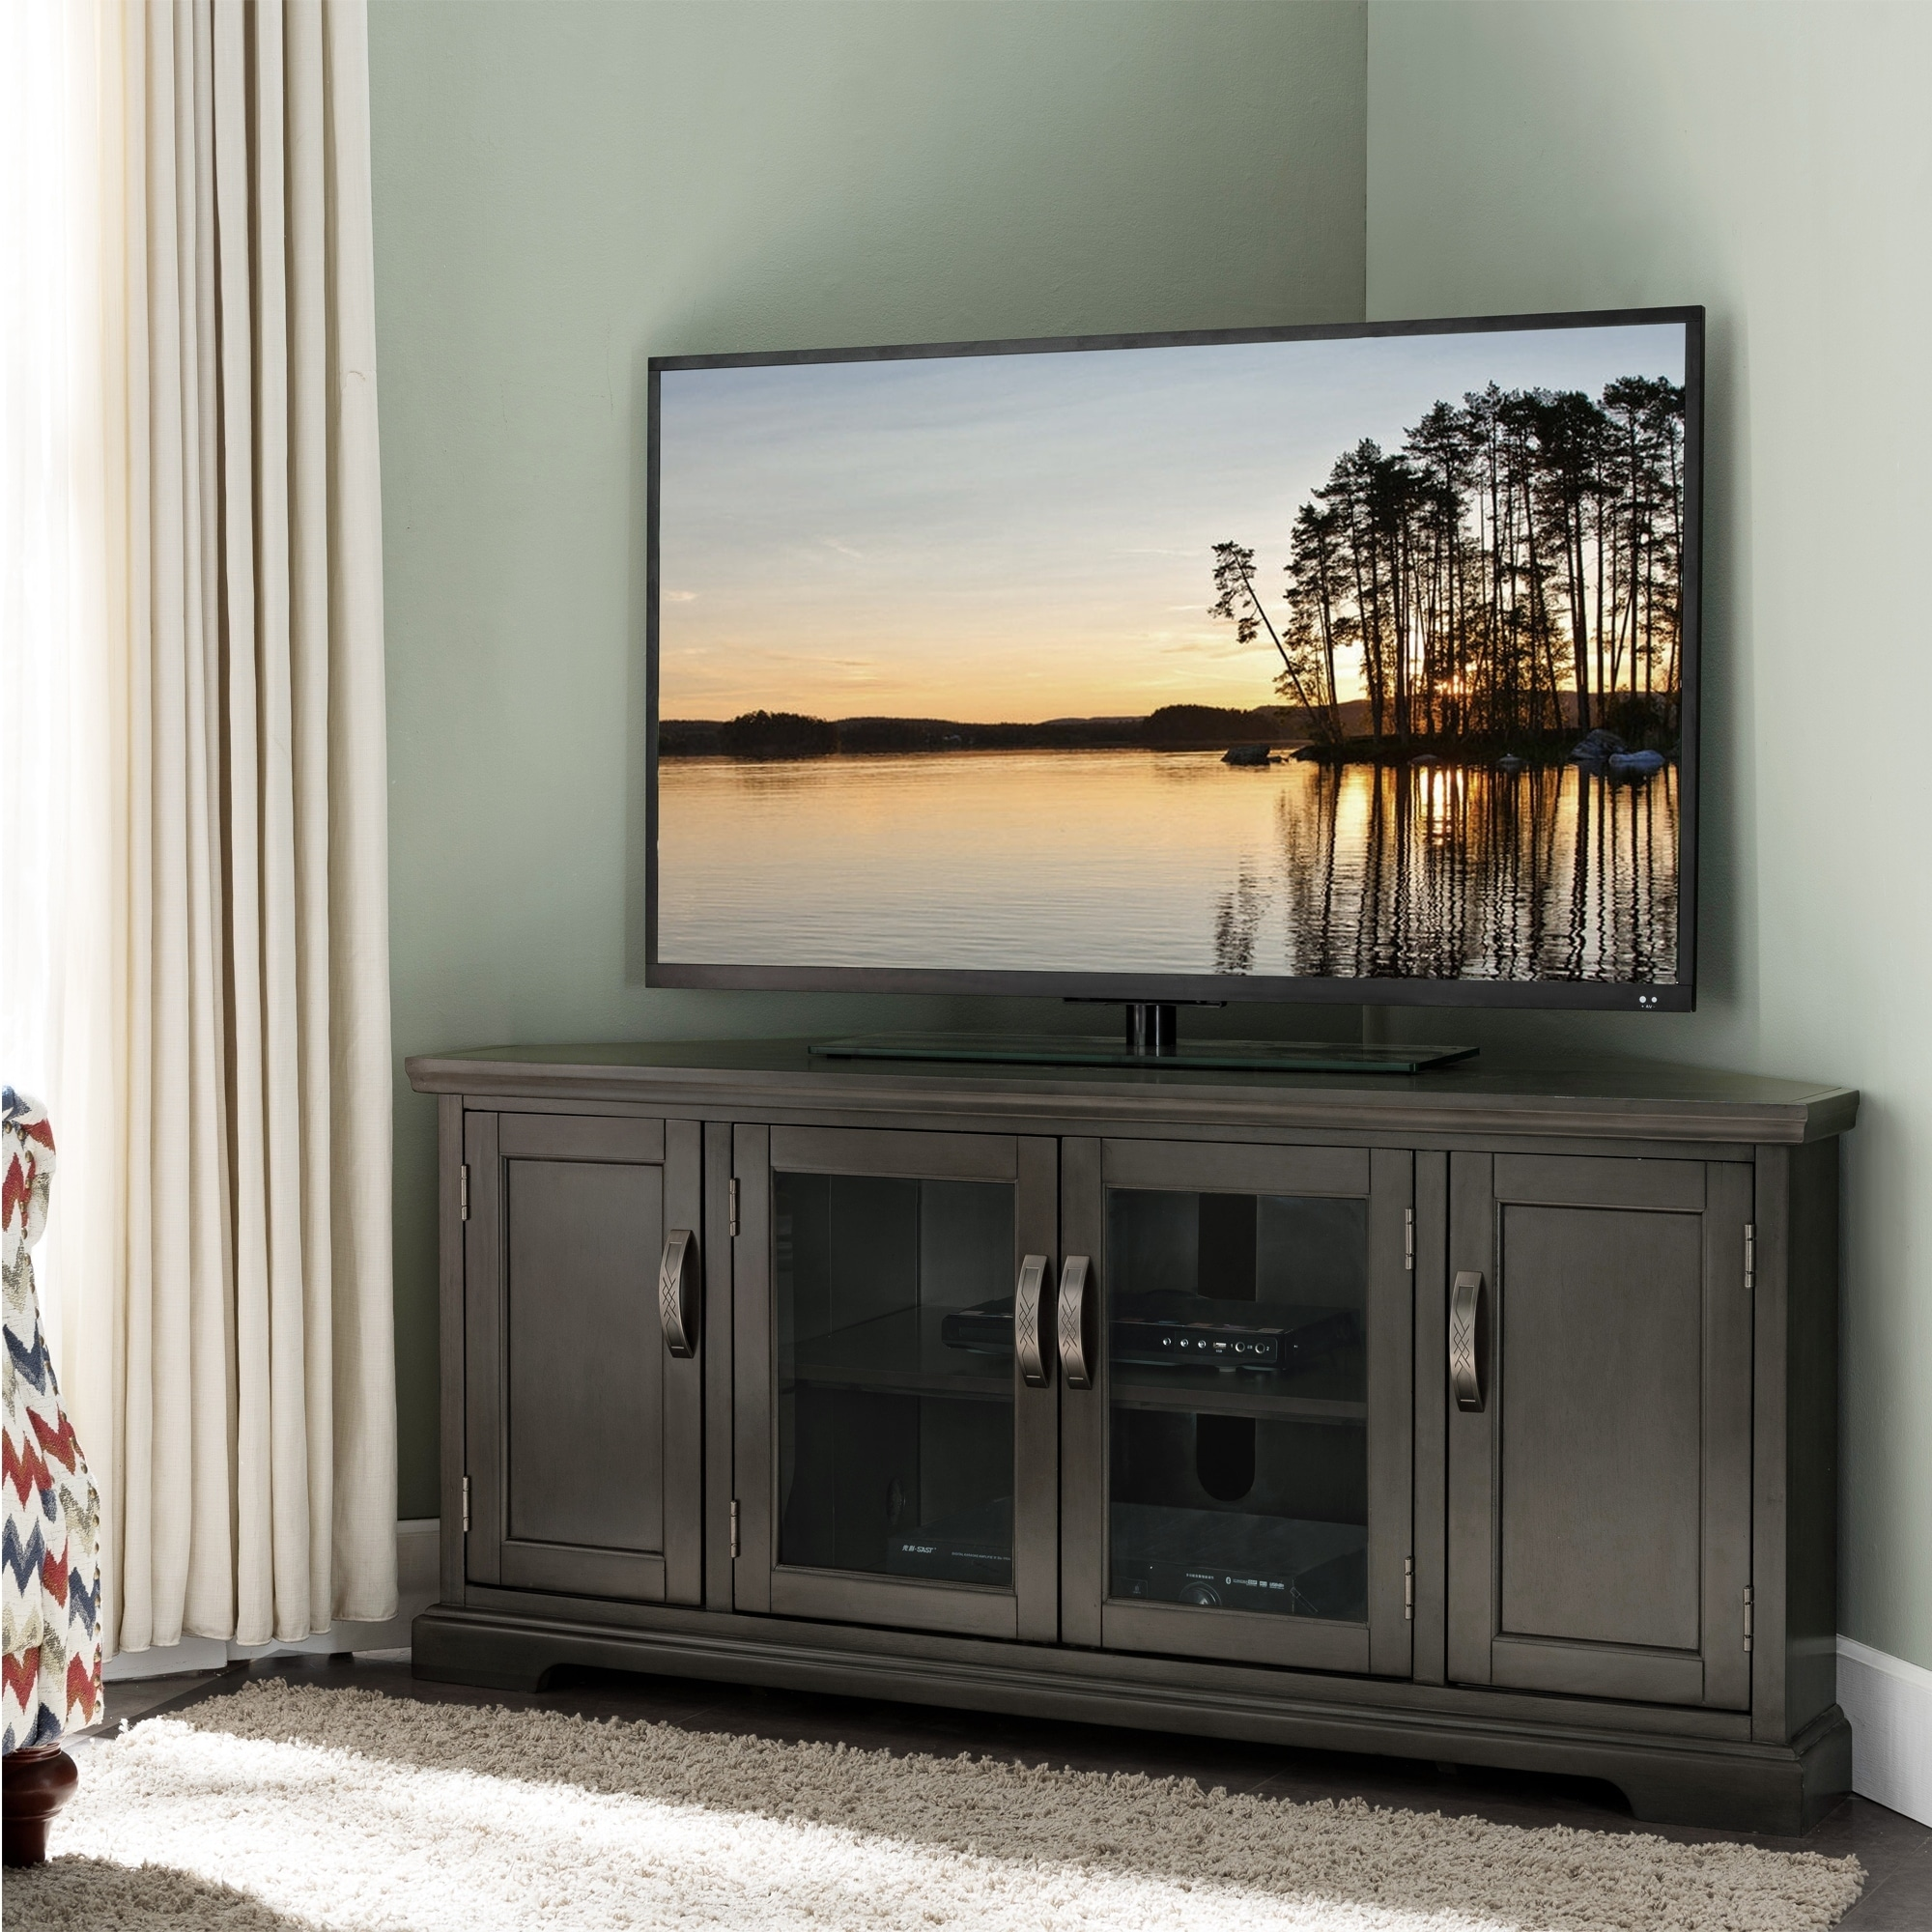 Shop copper grove janie grey oak 57 inch corner entertainment tv console on sale free shipping today overstock com 22751419